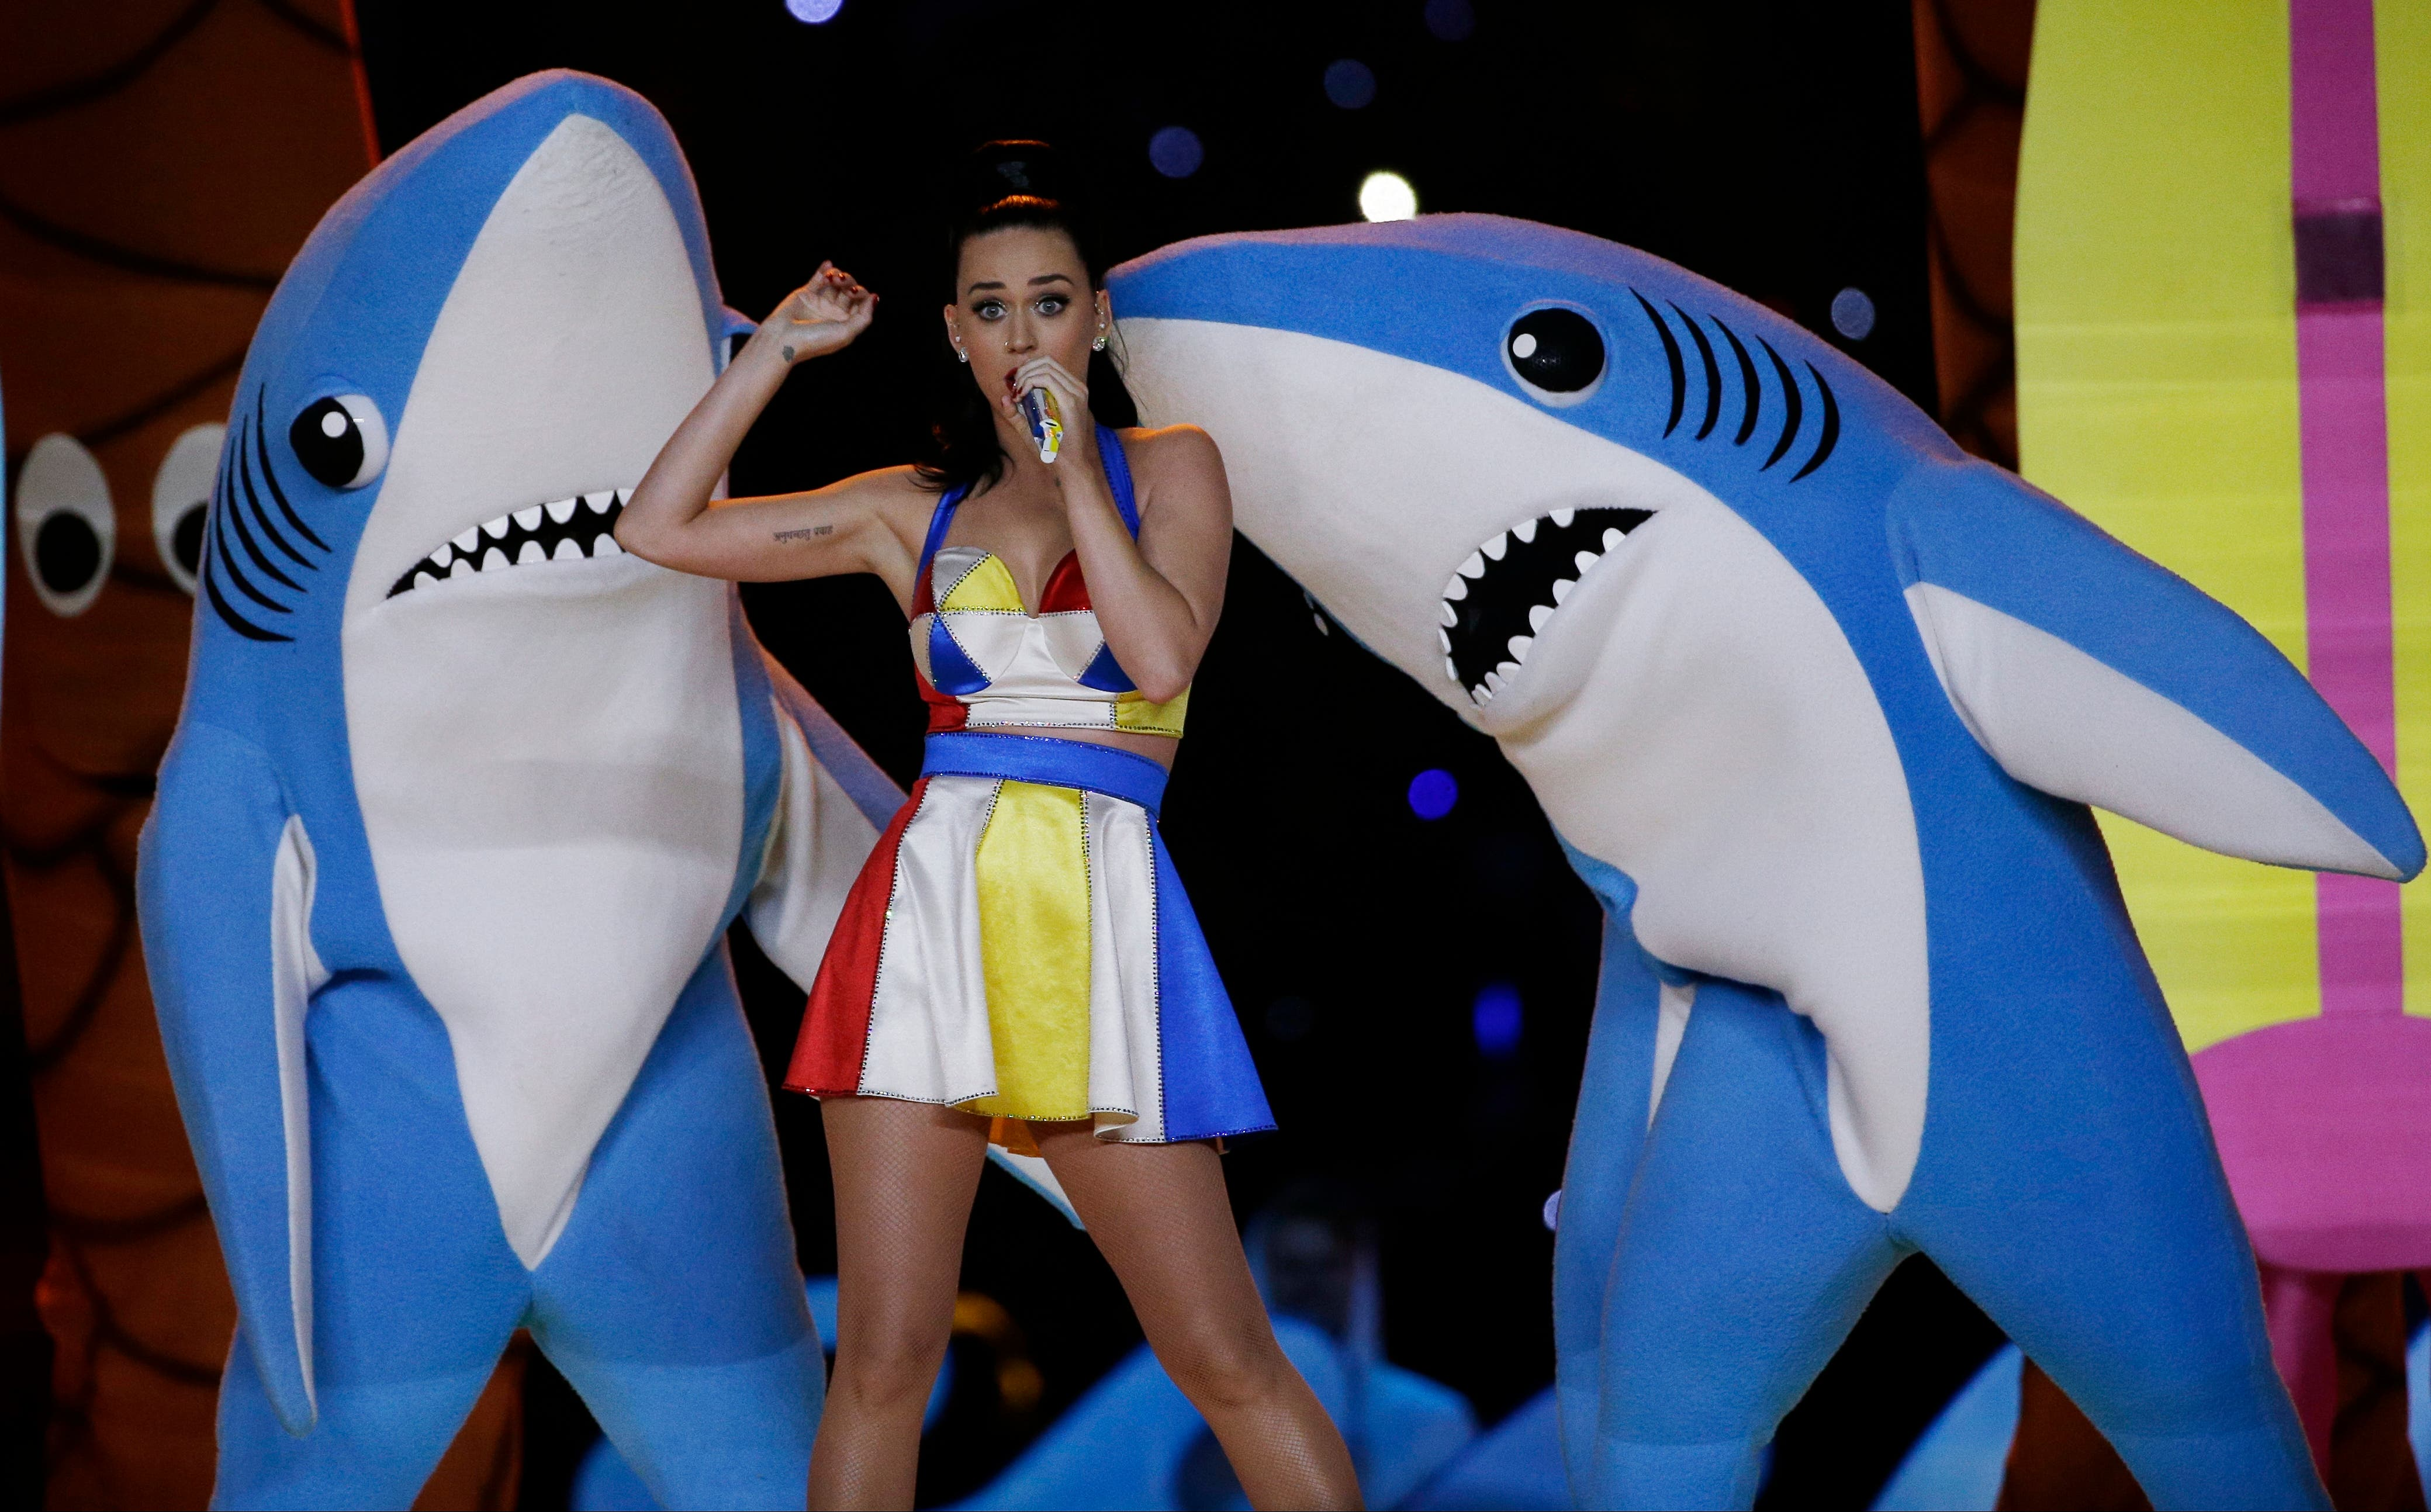 Singer Katy Perry performs during halftime of NFL Super Bowl XLIX football game between the Seattle Seahawks and the New England Patriots Sunday, Feb. 1, 2015, in Glendale, Ariz. (Reuters)